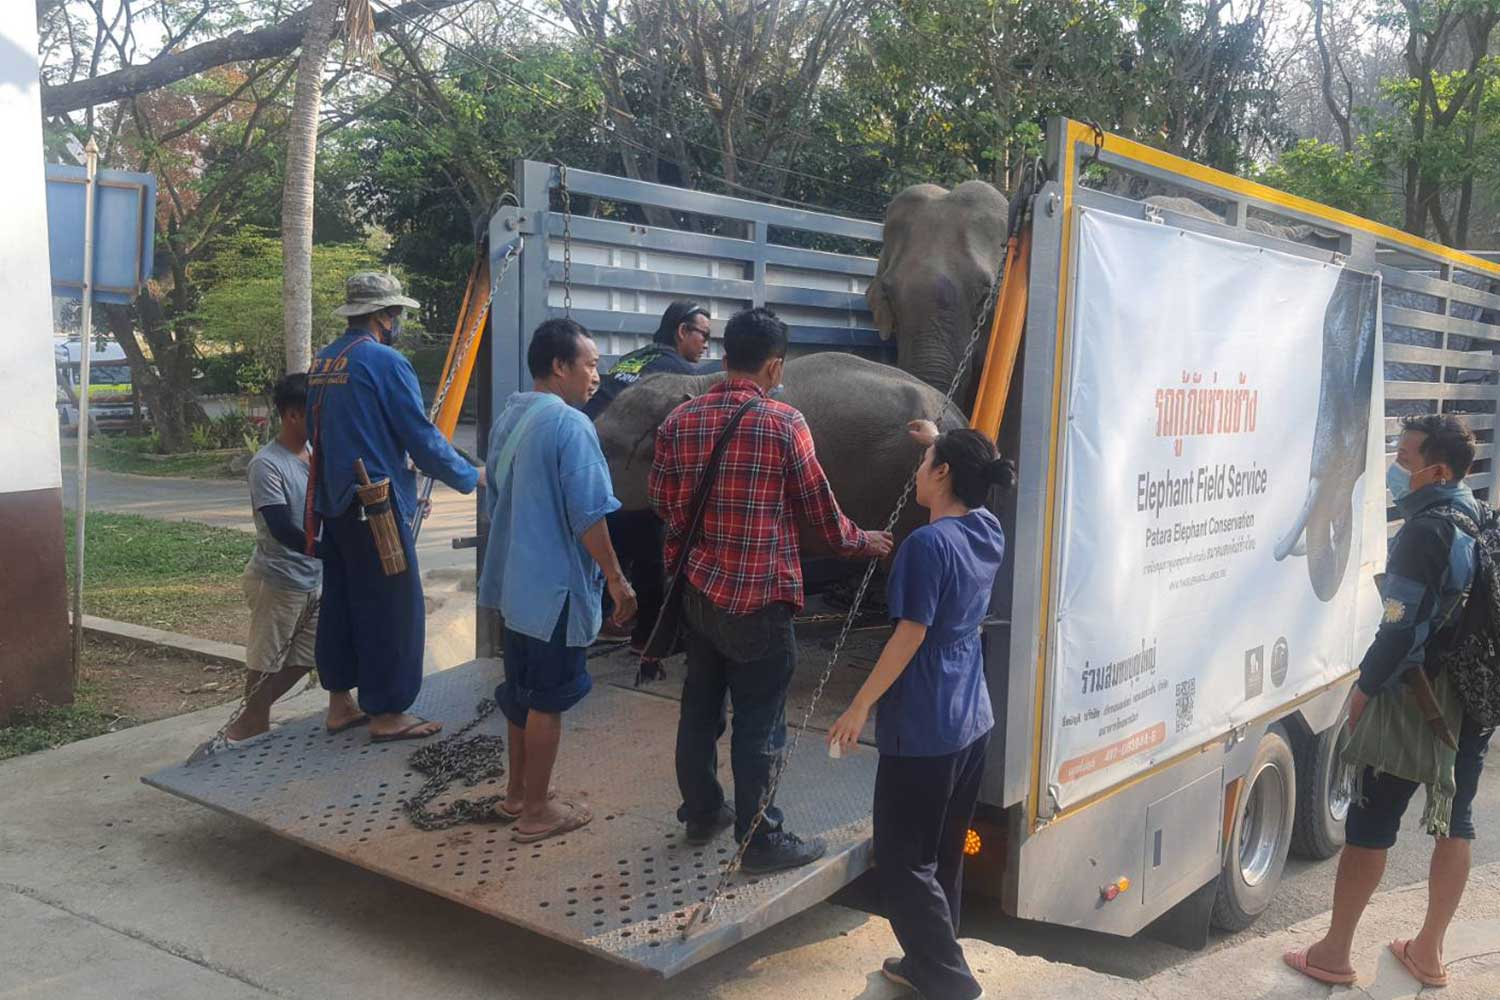 Three of the seven poisoned elephants arrive at the Elephant Hospital in Lampang for urgent treatment, after paraquat contaminated grass at a border village in Omkoi district, Chiang Mai. (Photo: Phanumet Tanraksa)